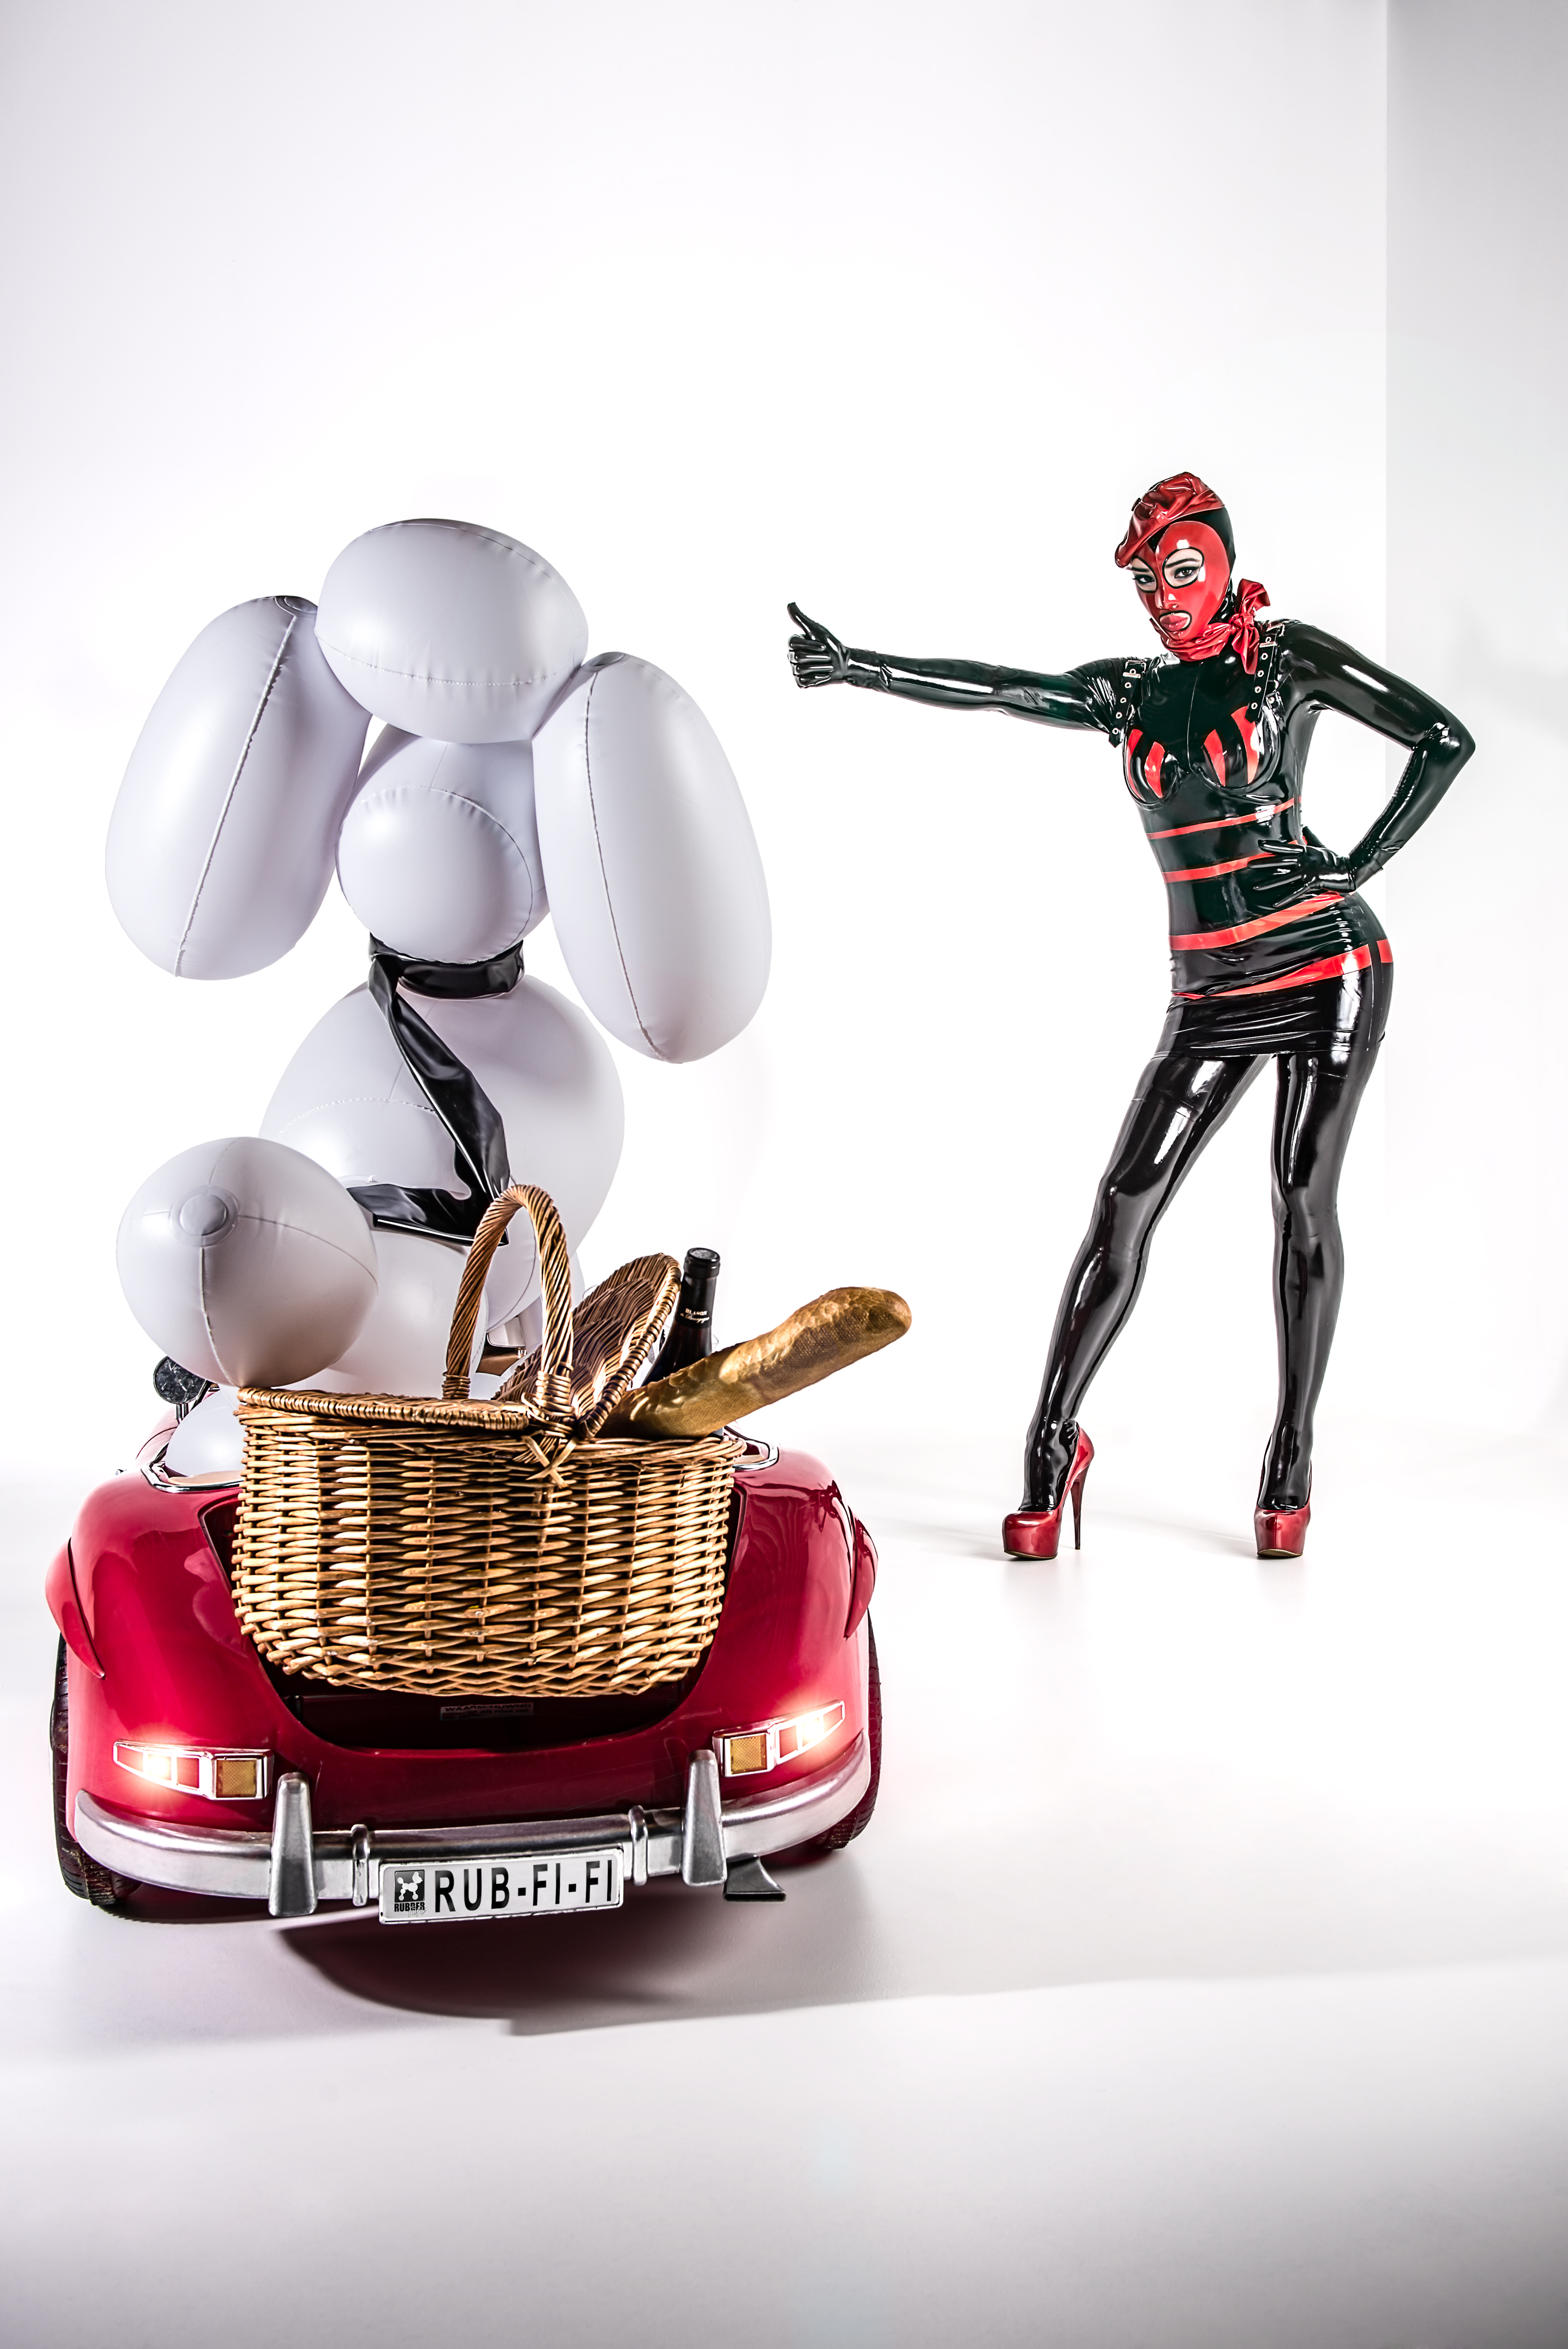 Rubber-Fifi-paris